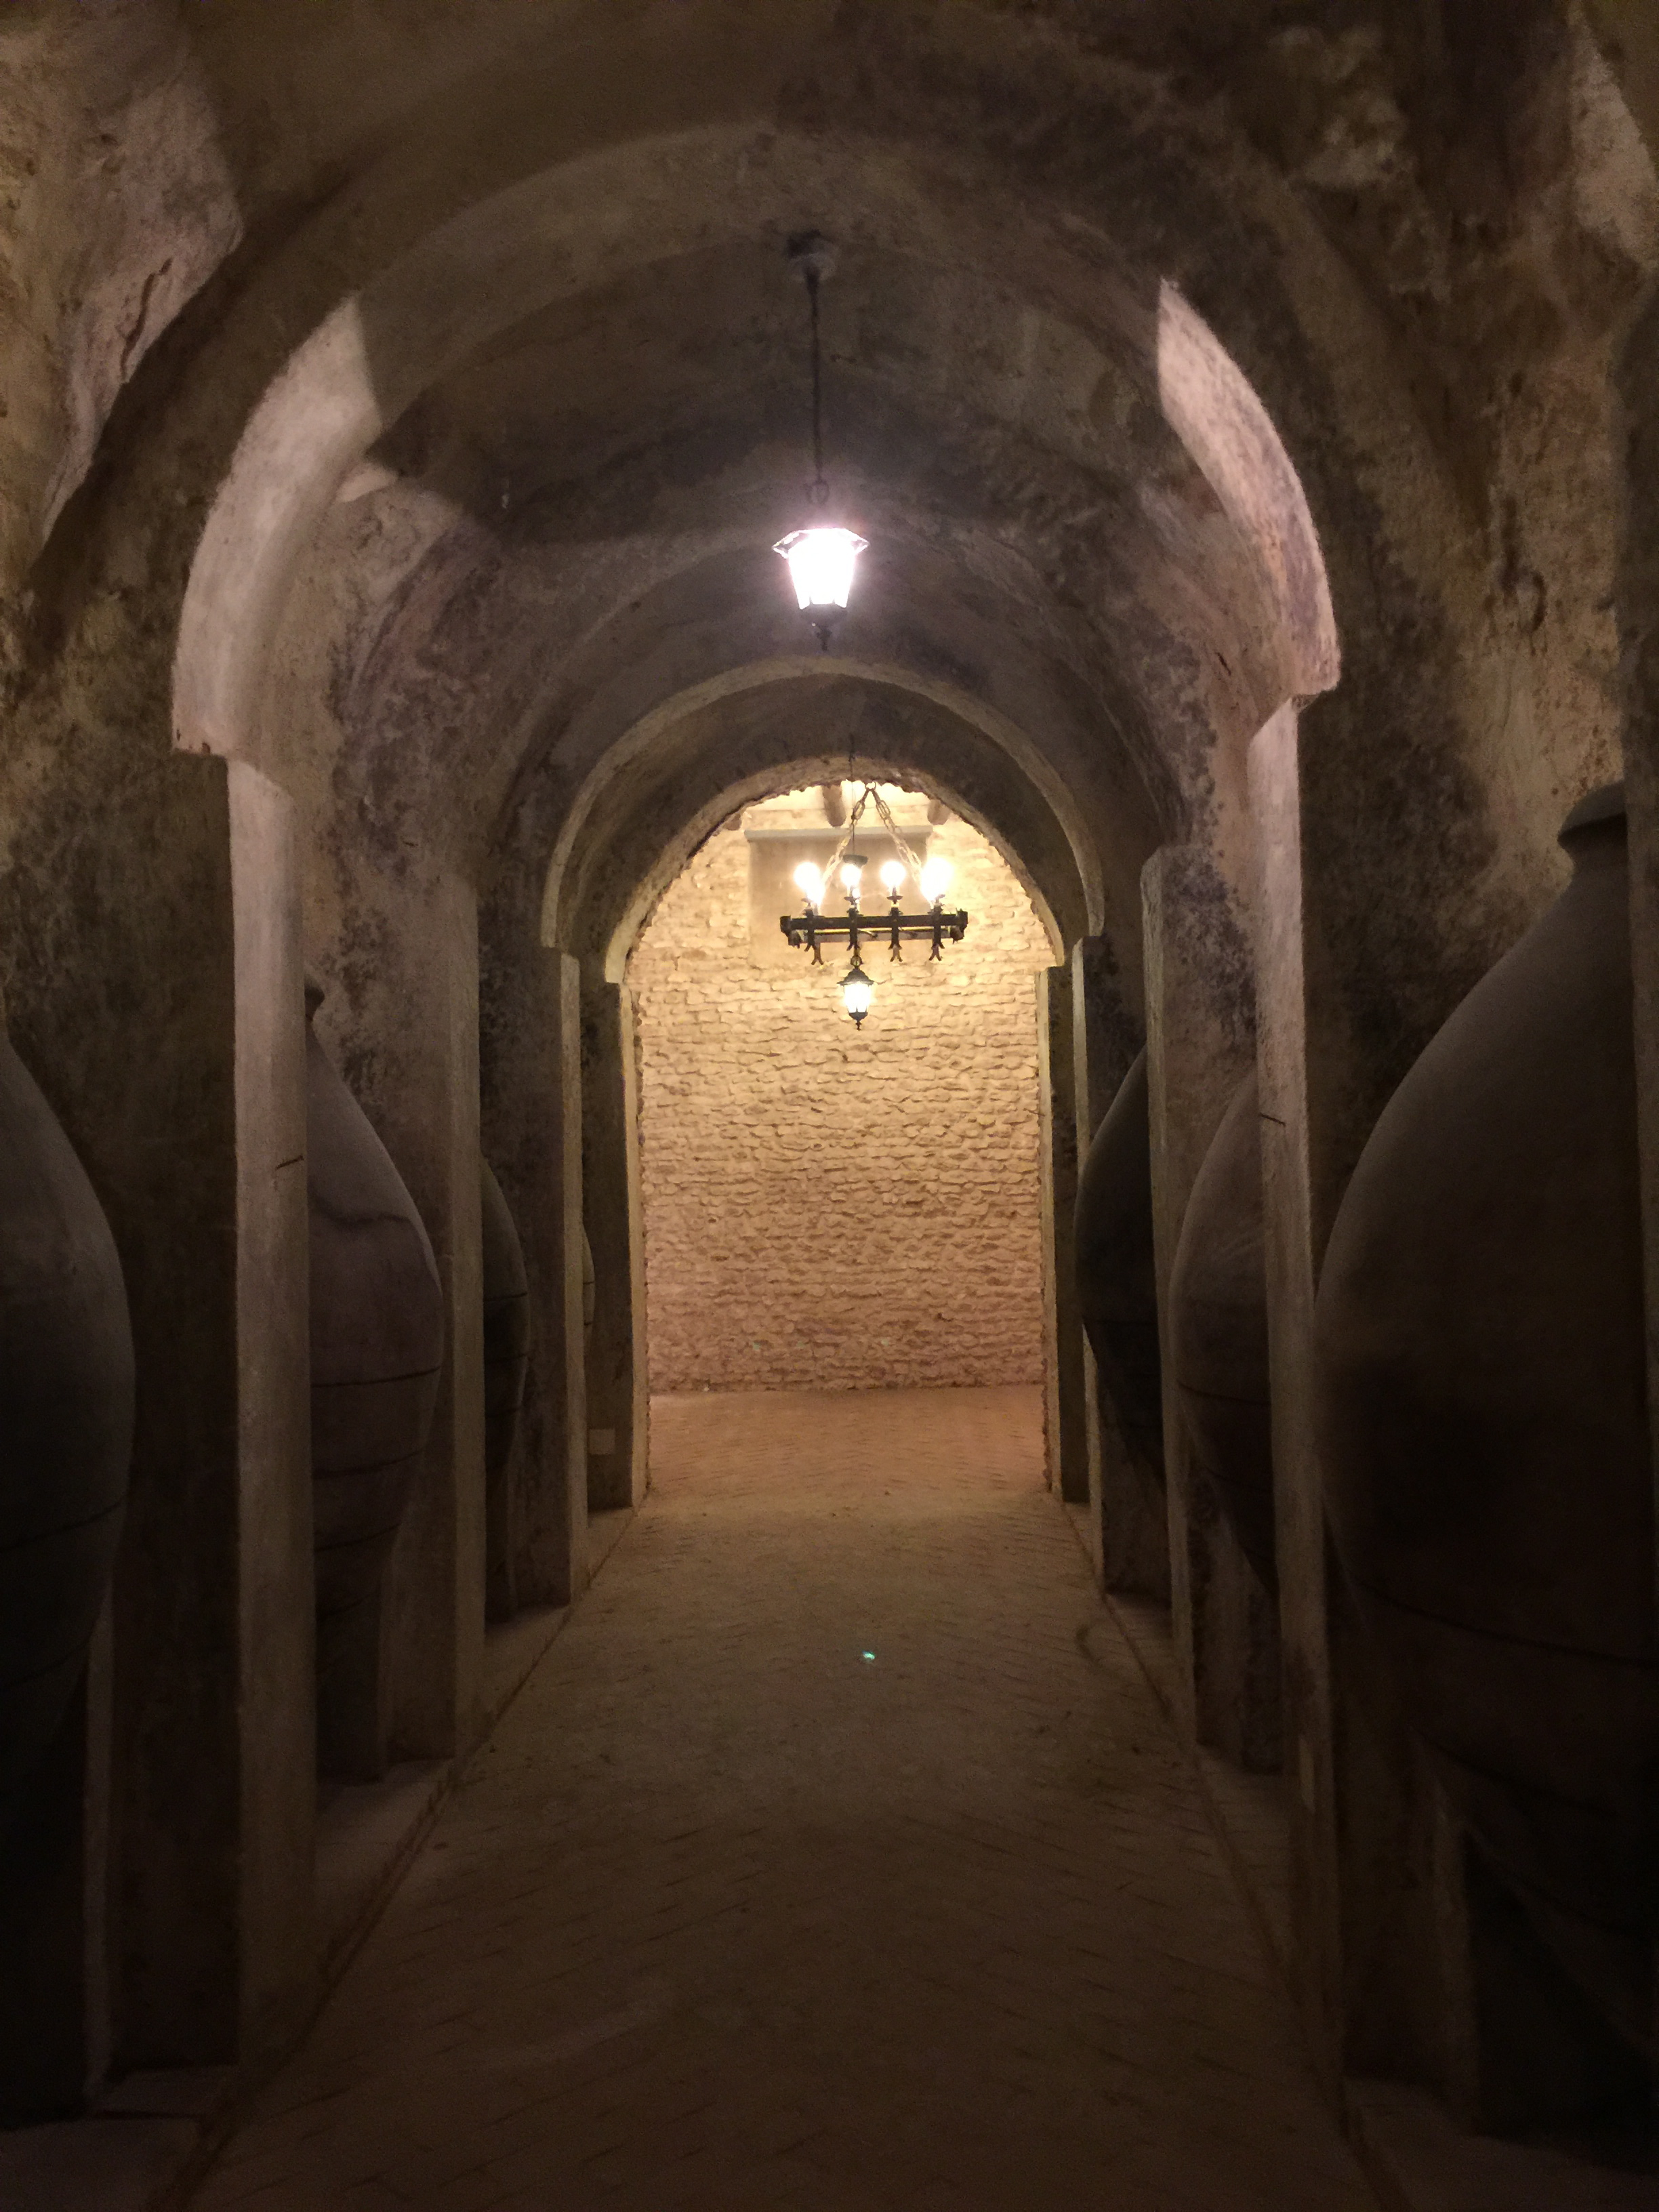 Cave lined with cement amphorae